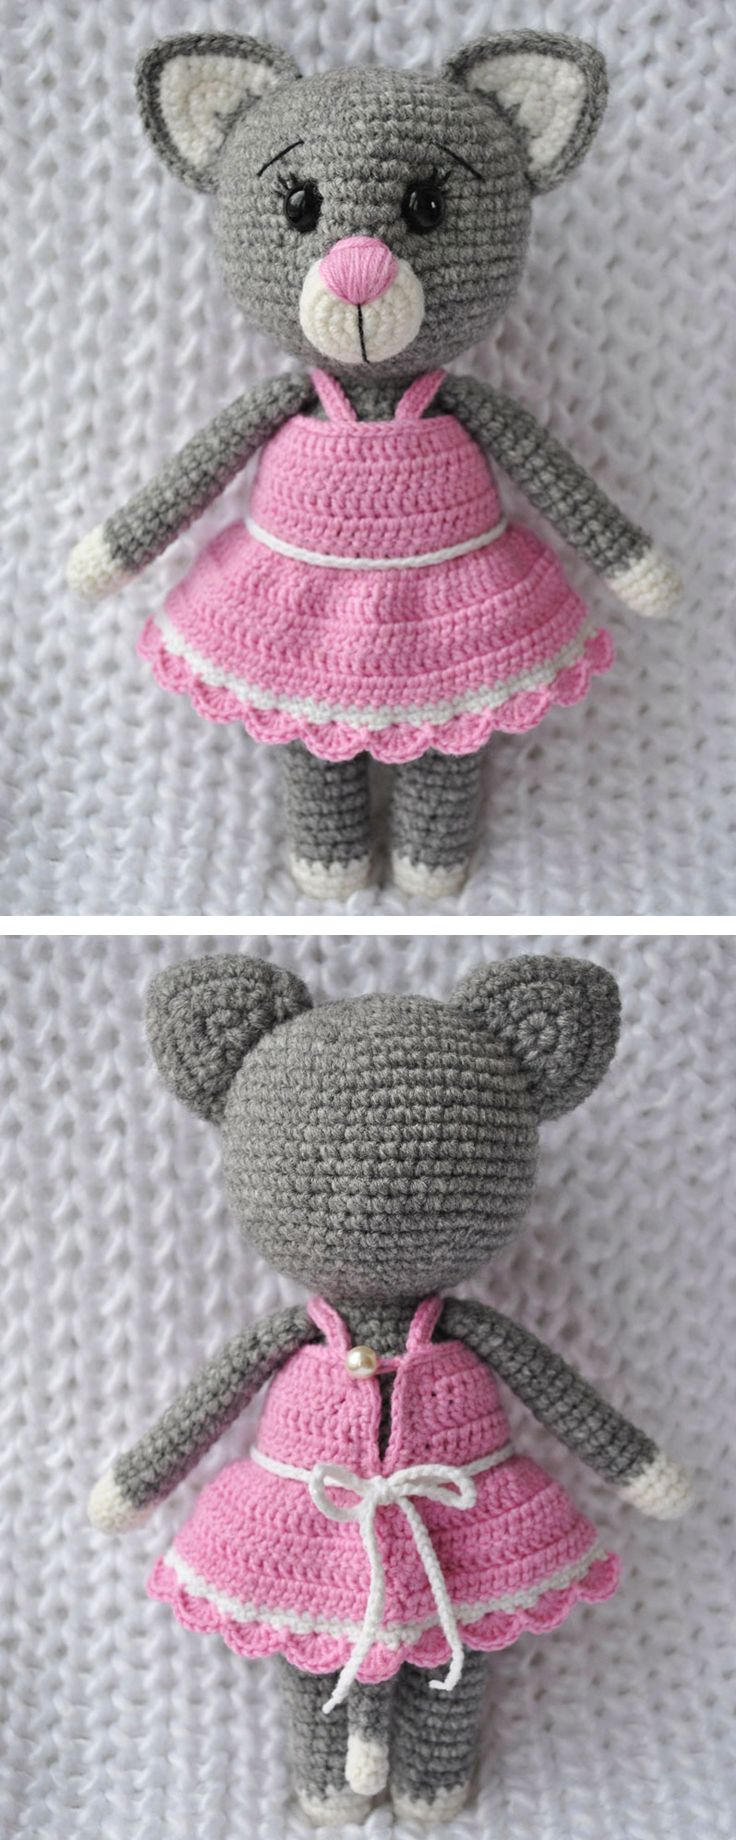 Lady cat amigurumi pattern | Free amigurumi patterns - Amigurumi ...